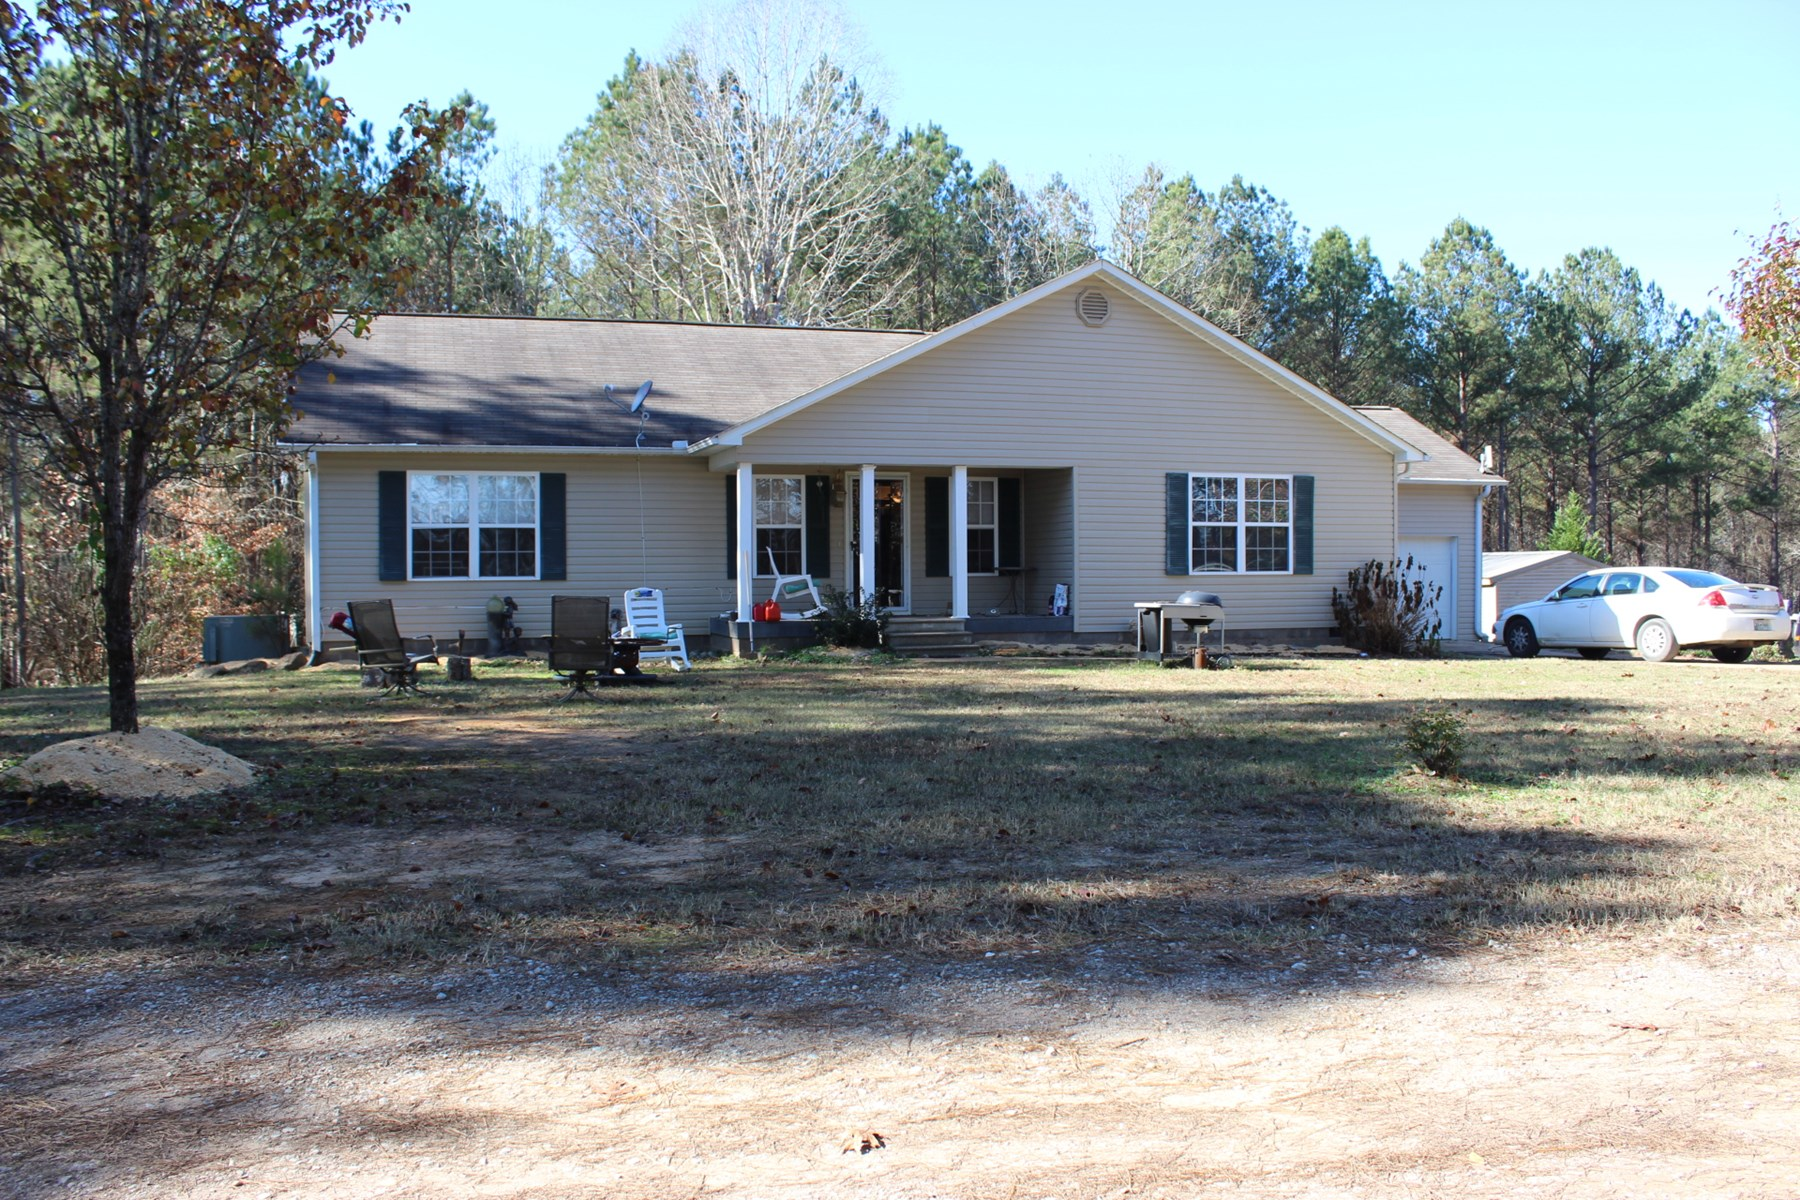 3 BEDROOM HOME FOR SALE NEAR FISHING IN MCNAIRY COUNTY TN